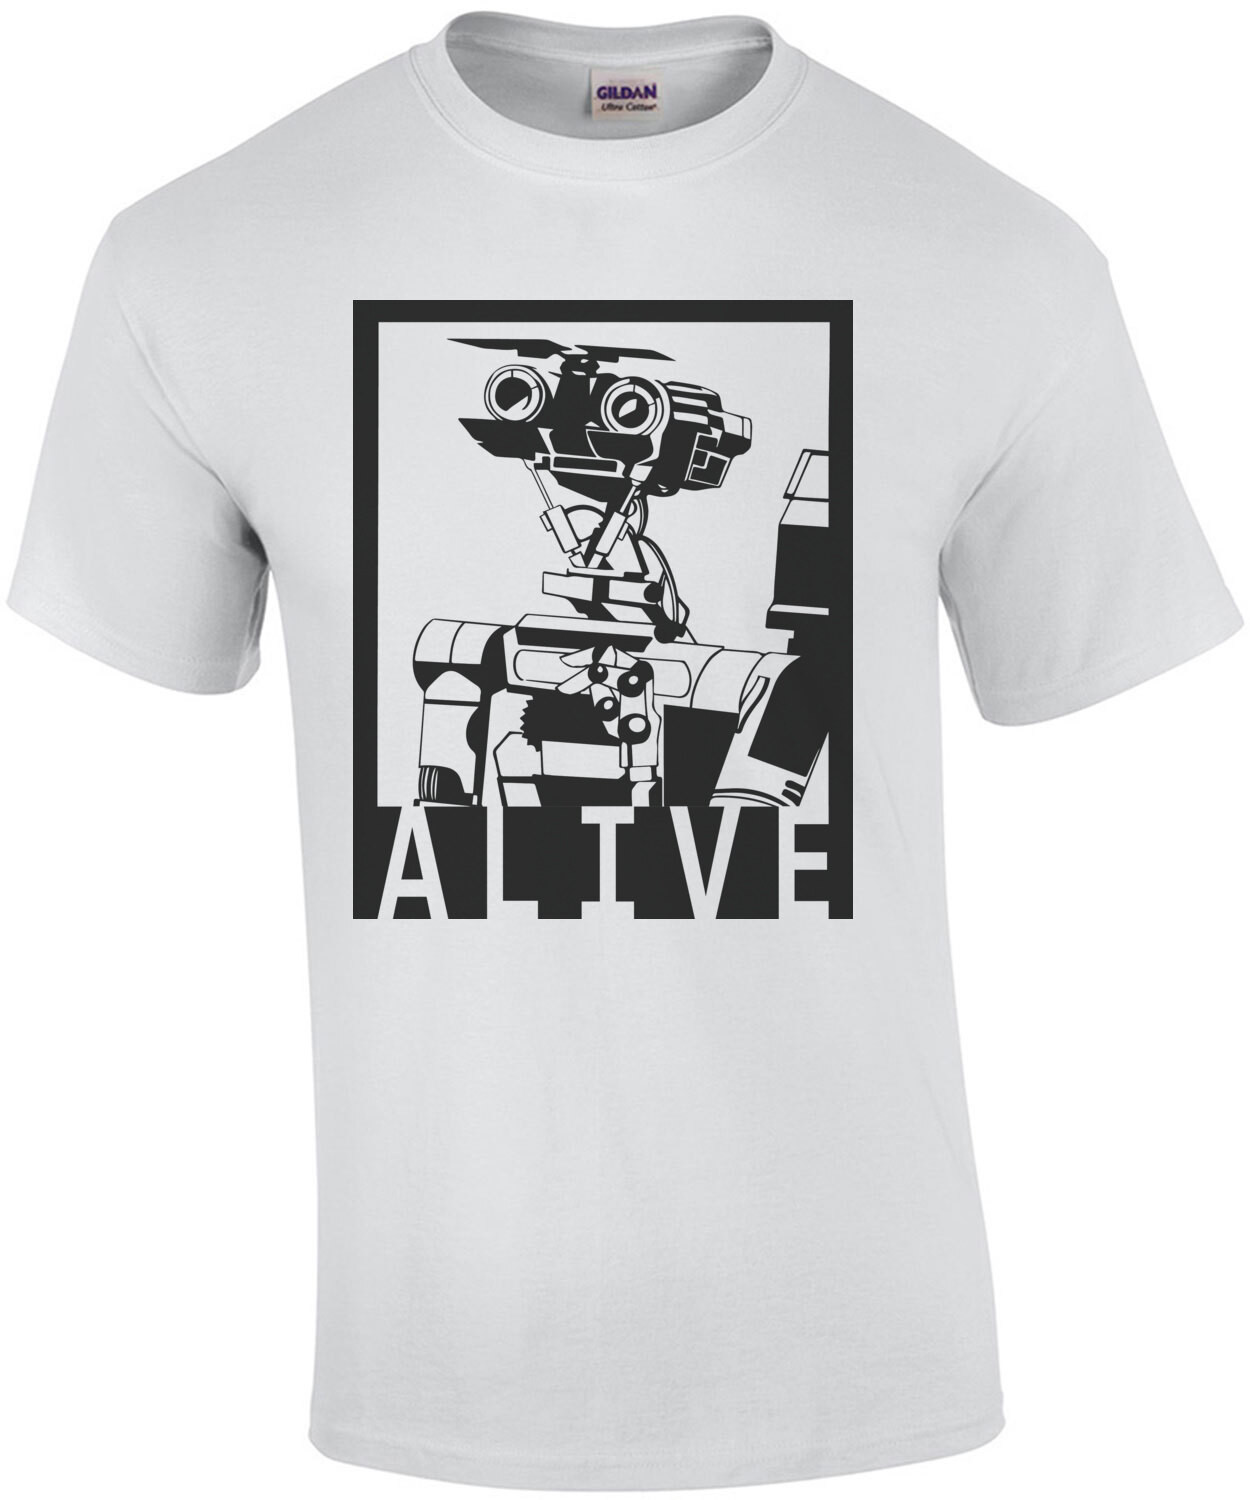 Alive - Johnny 5 - Short Circuit - 80's T-Shirt